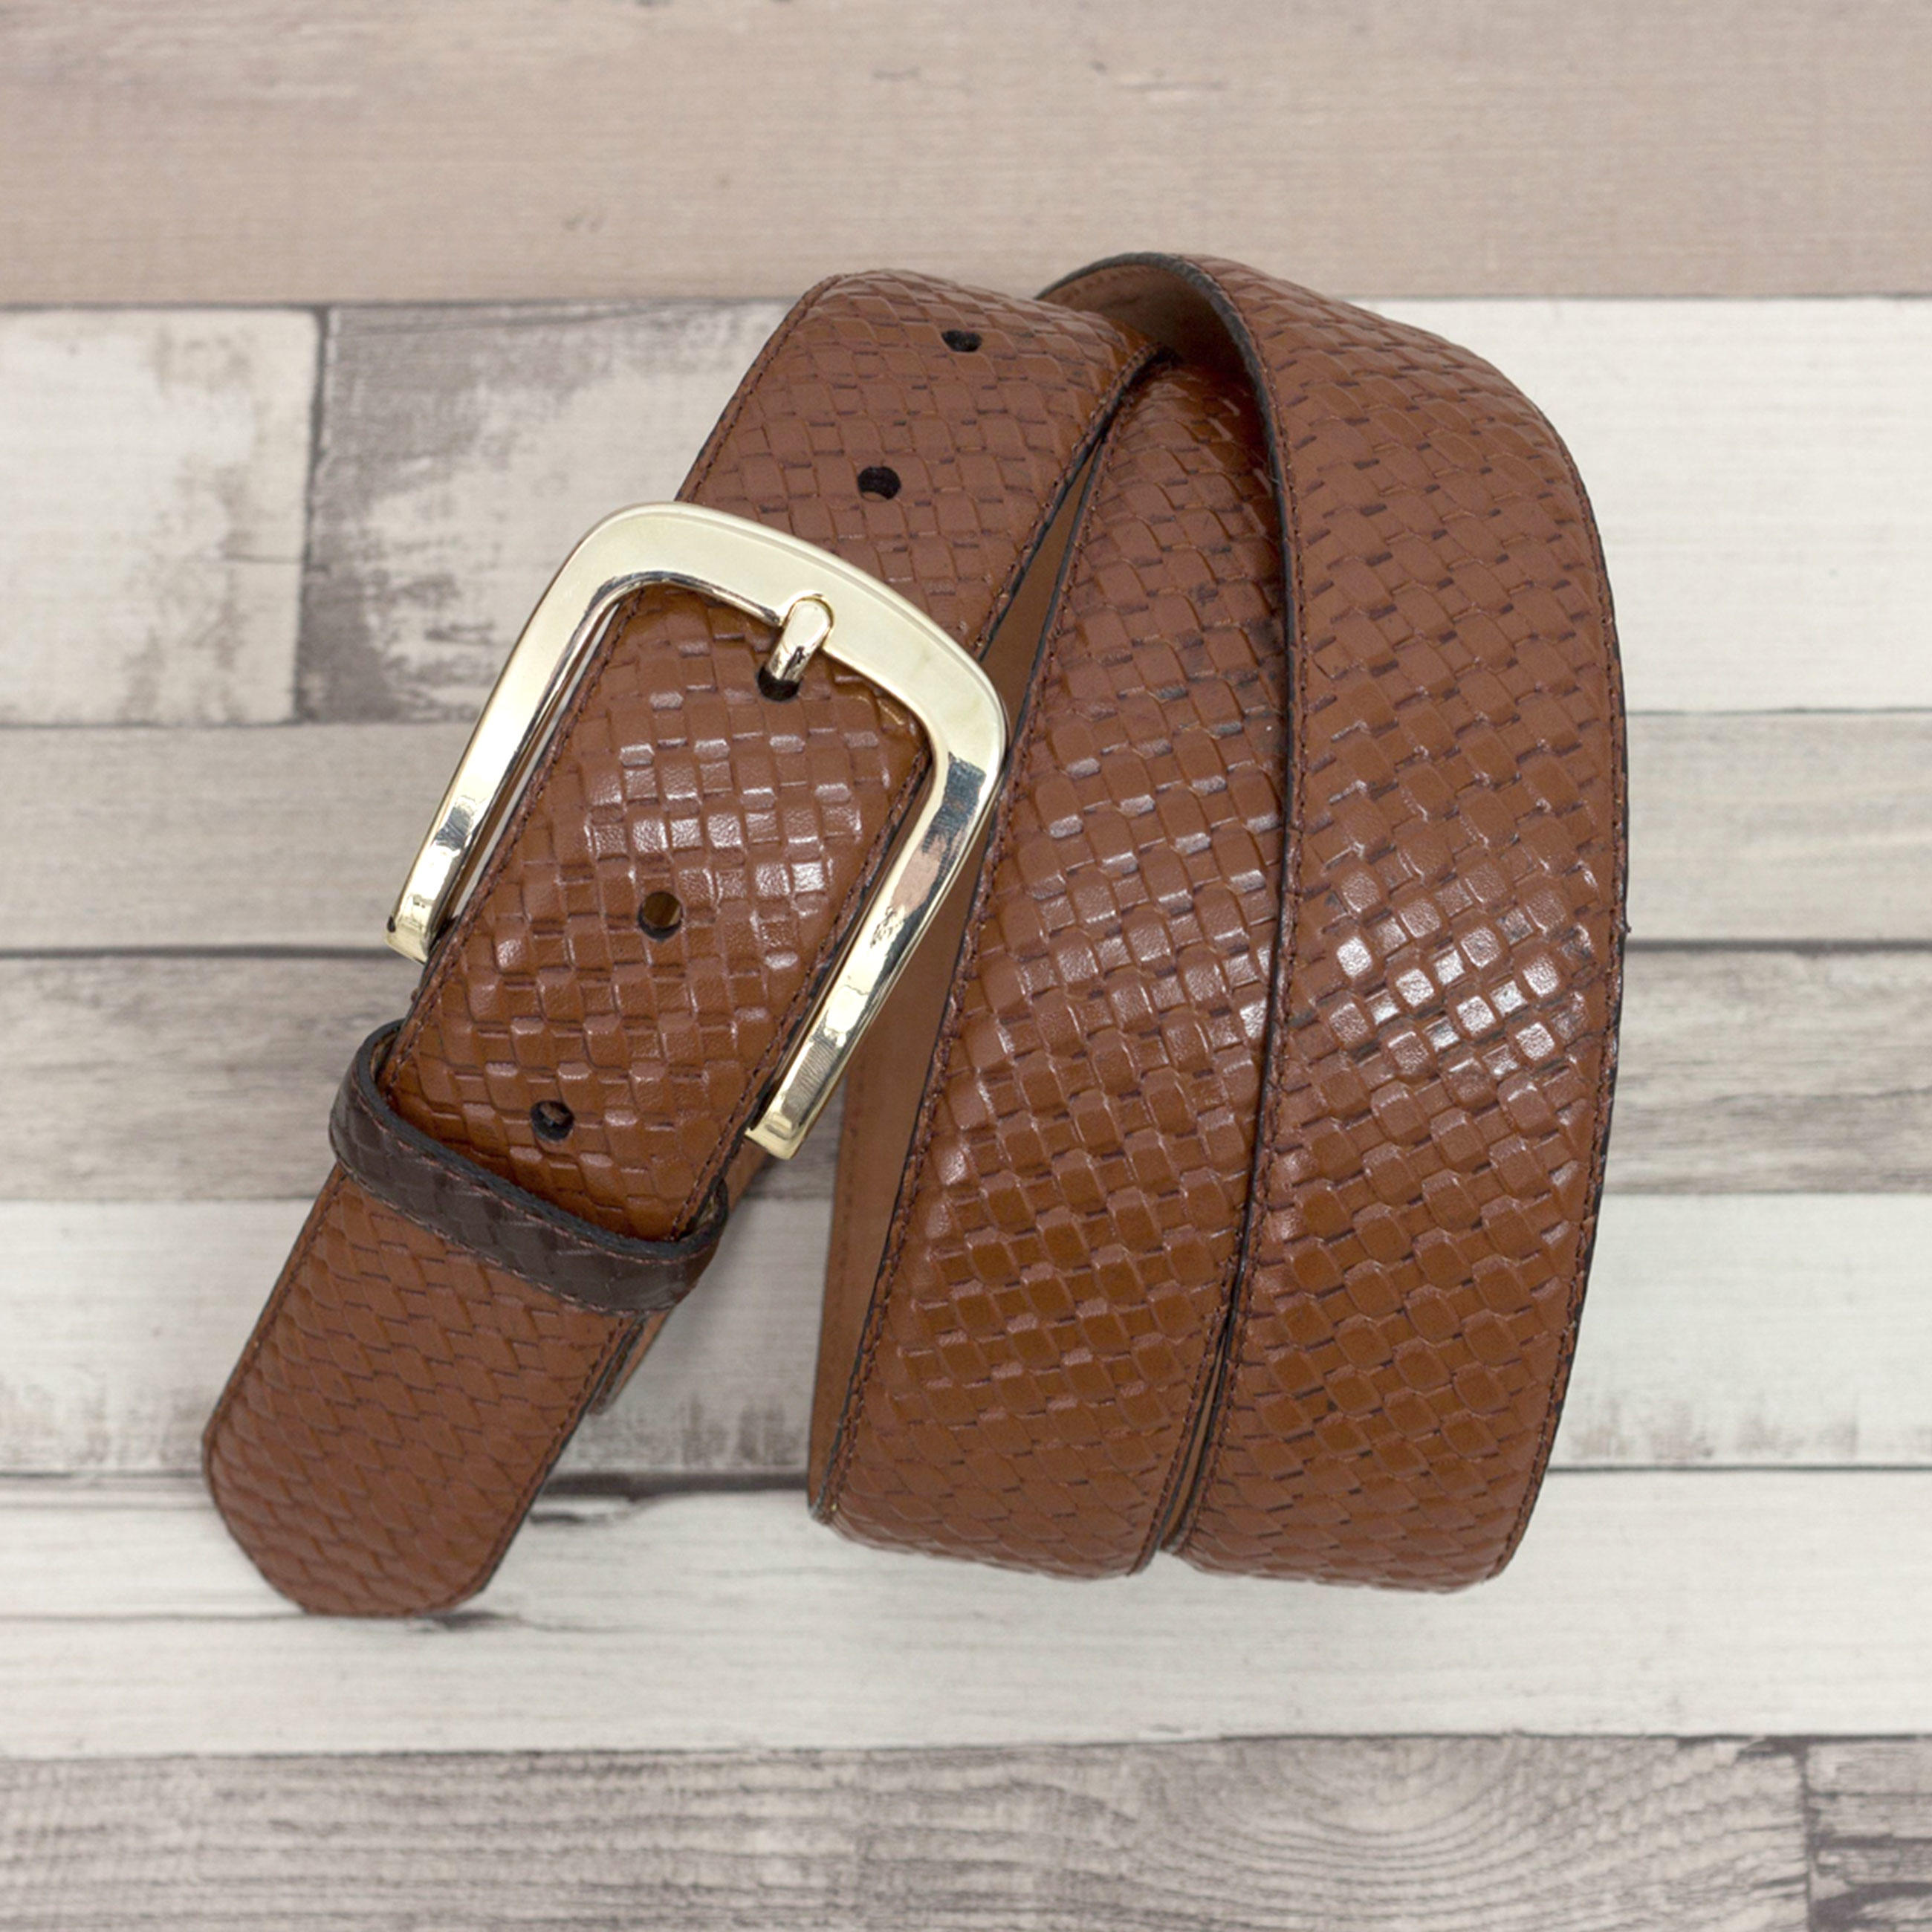 'Hamptons' Braided Cognac & Brown Polished Calfskin Belt Luggare nubuck lining Top View